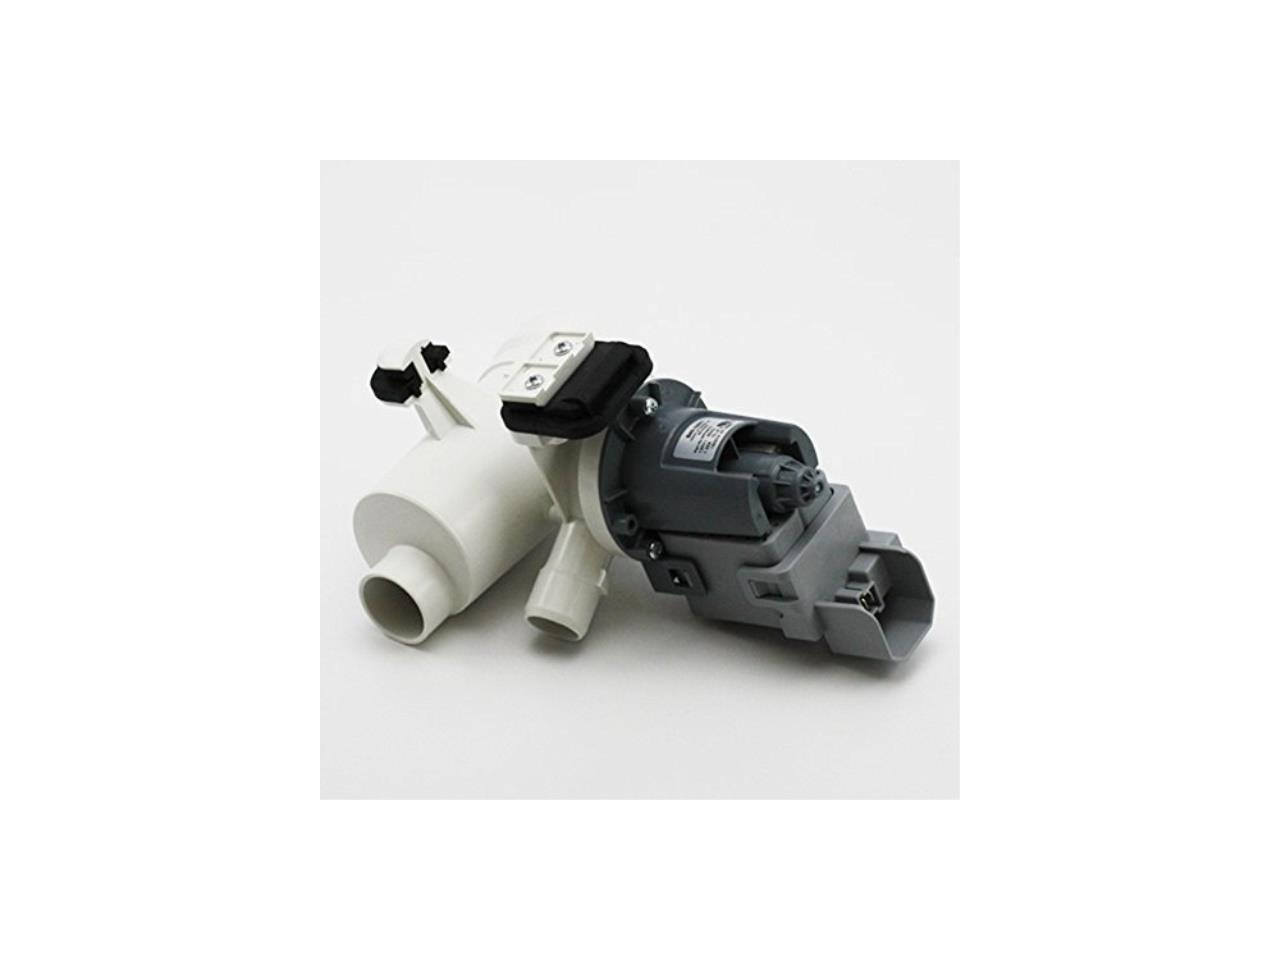 Supco LP30913 Washer Drain Pump